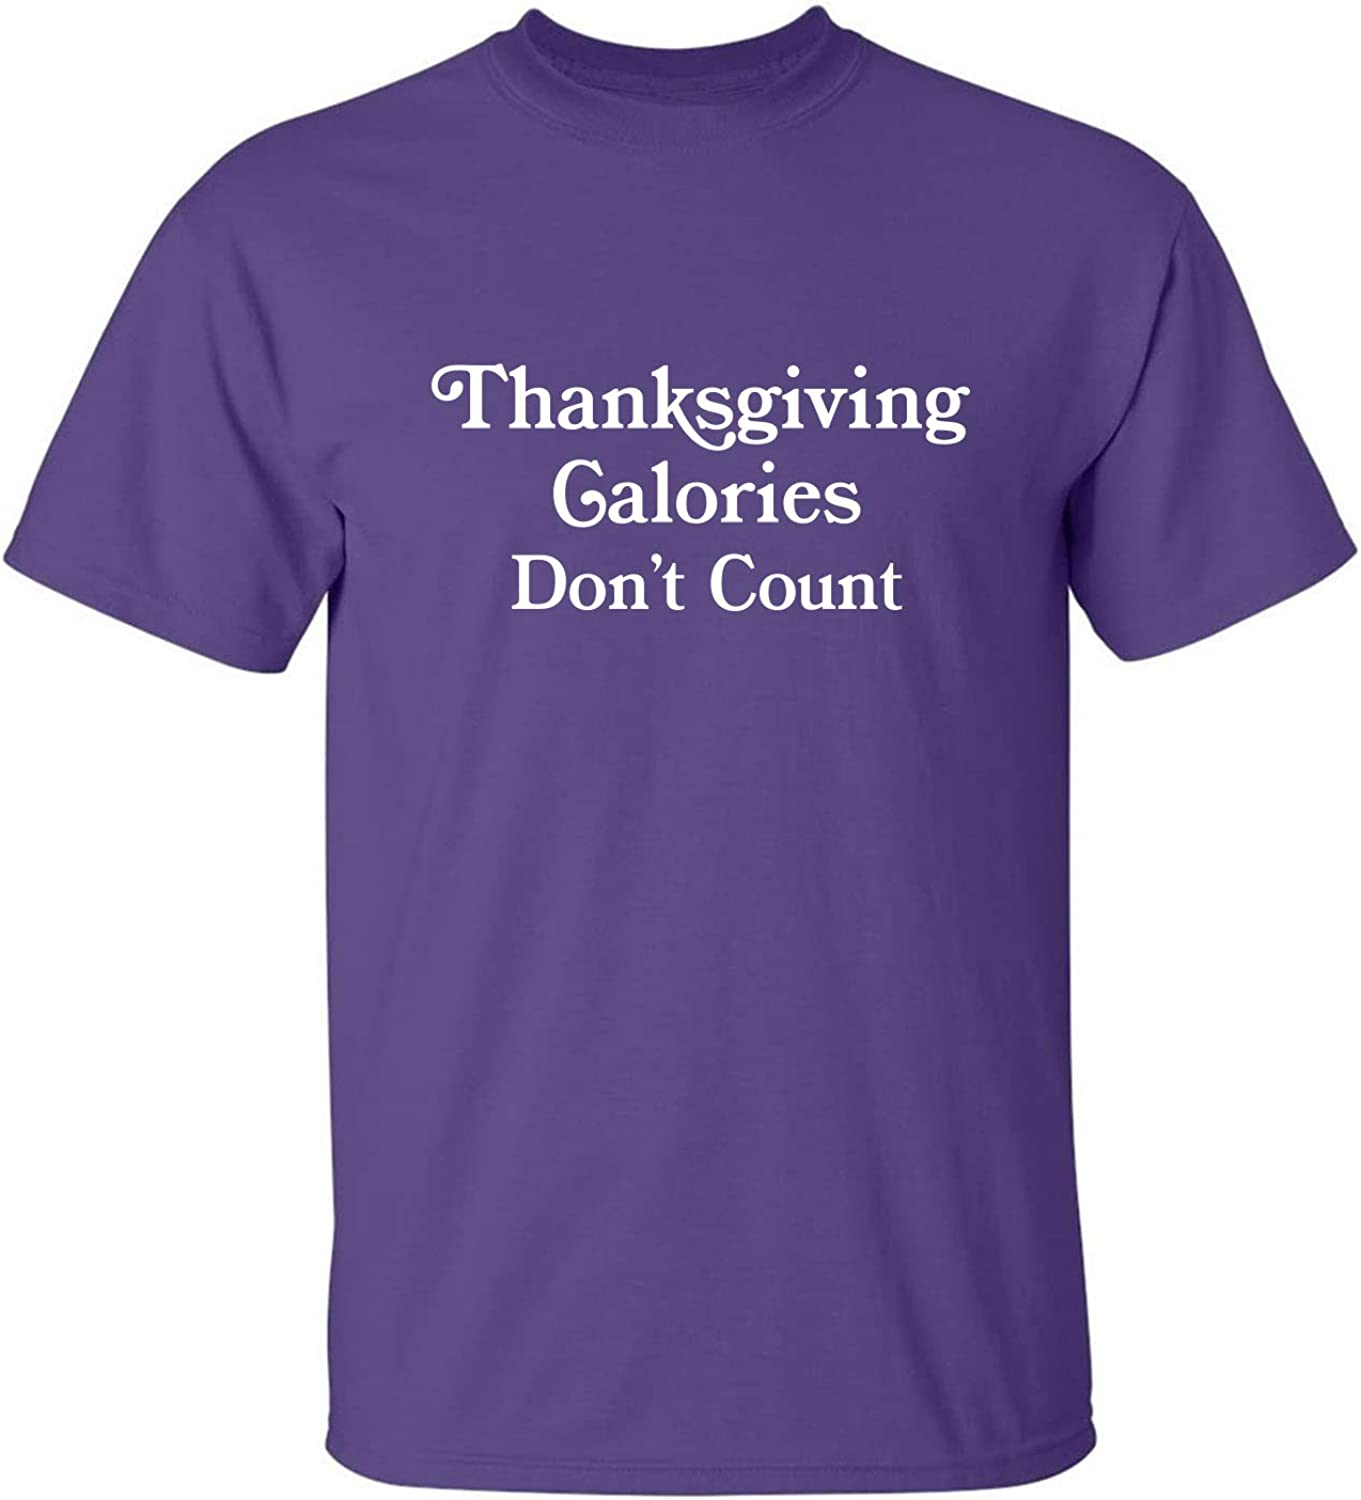 Thanksgiving Calories Don't Count Adult T-Shirt in Purple - XXXXX-Large